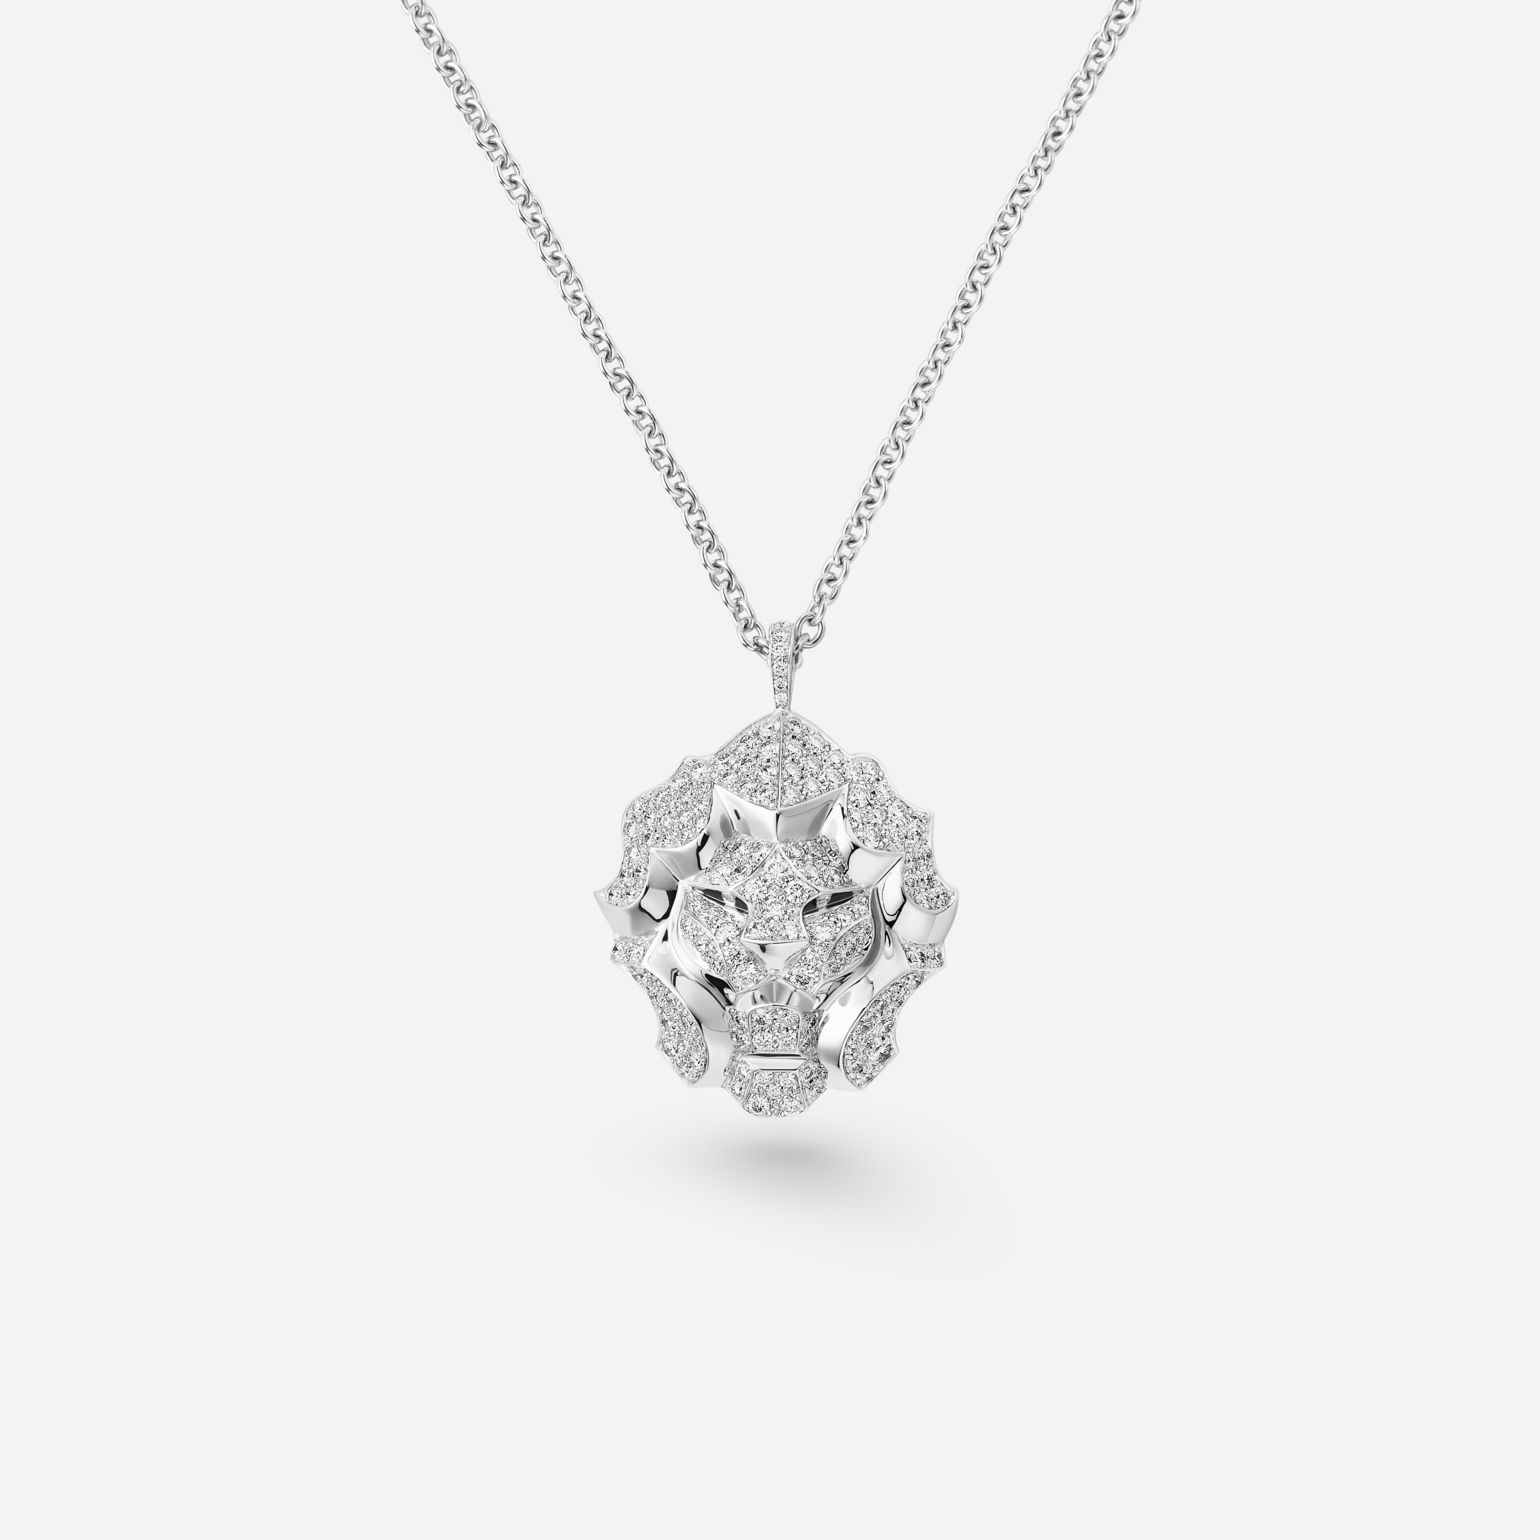 Collier Sous le Signe du Lion Or blanc 18 carats, diamants